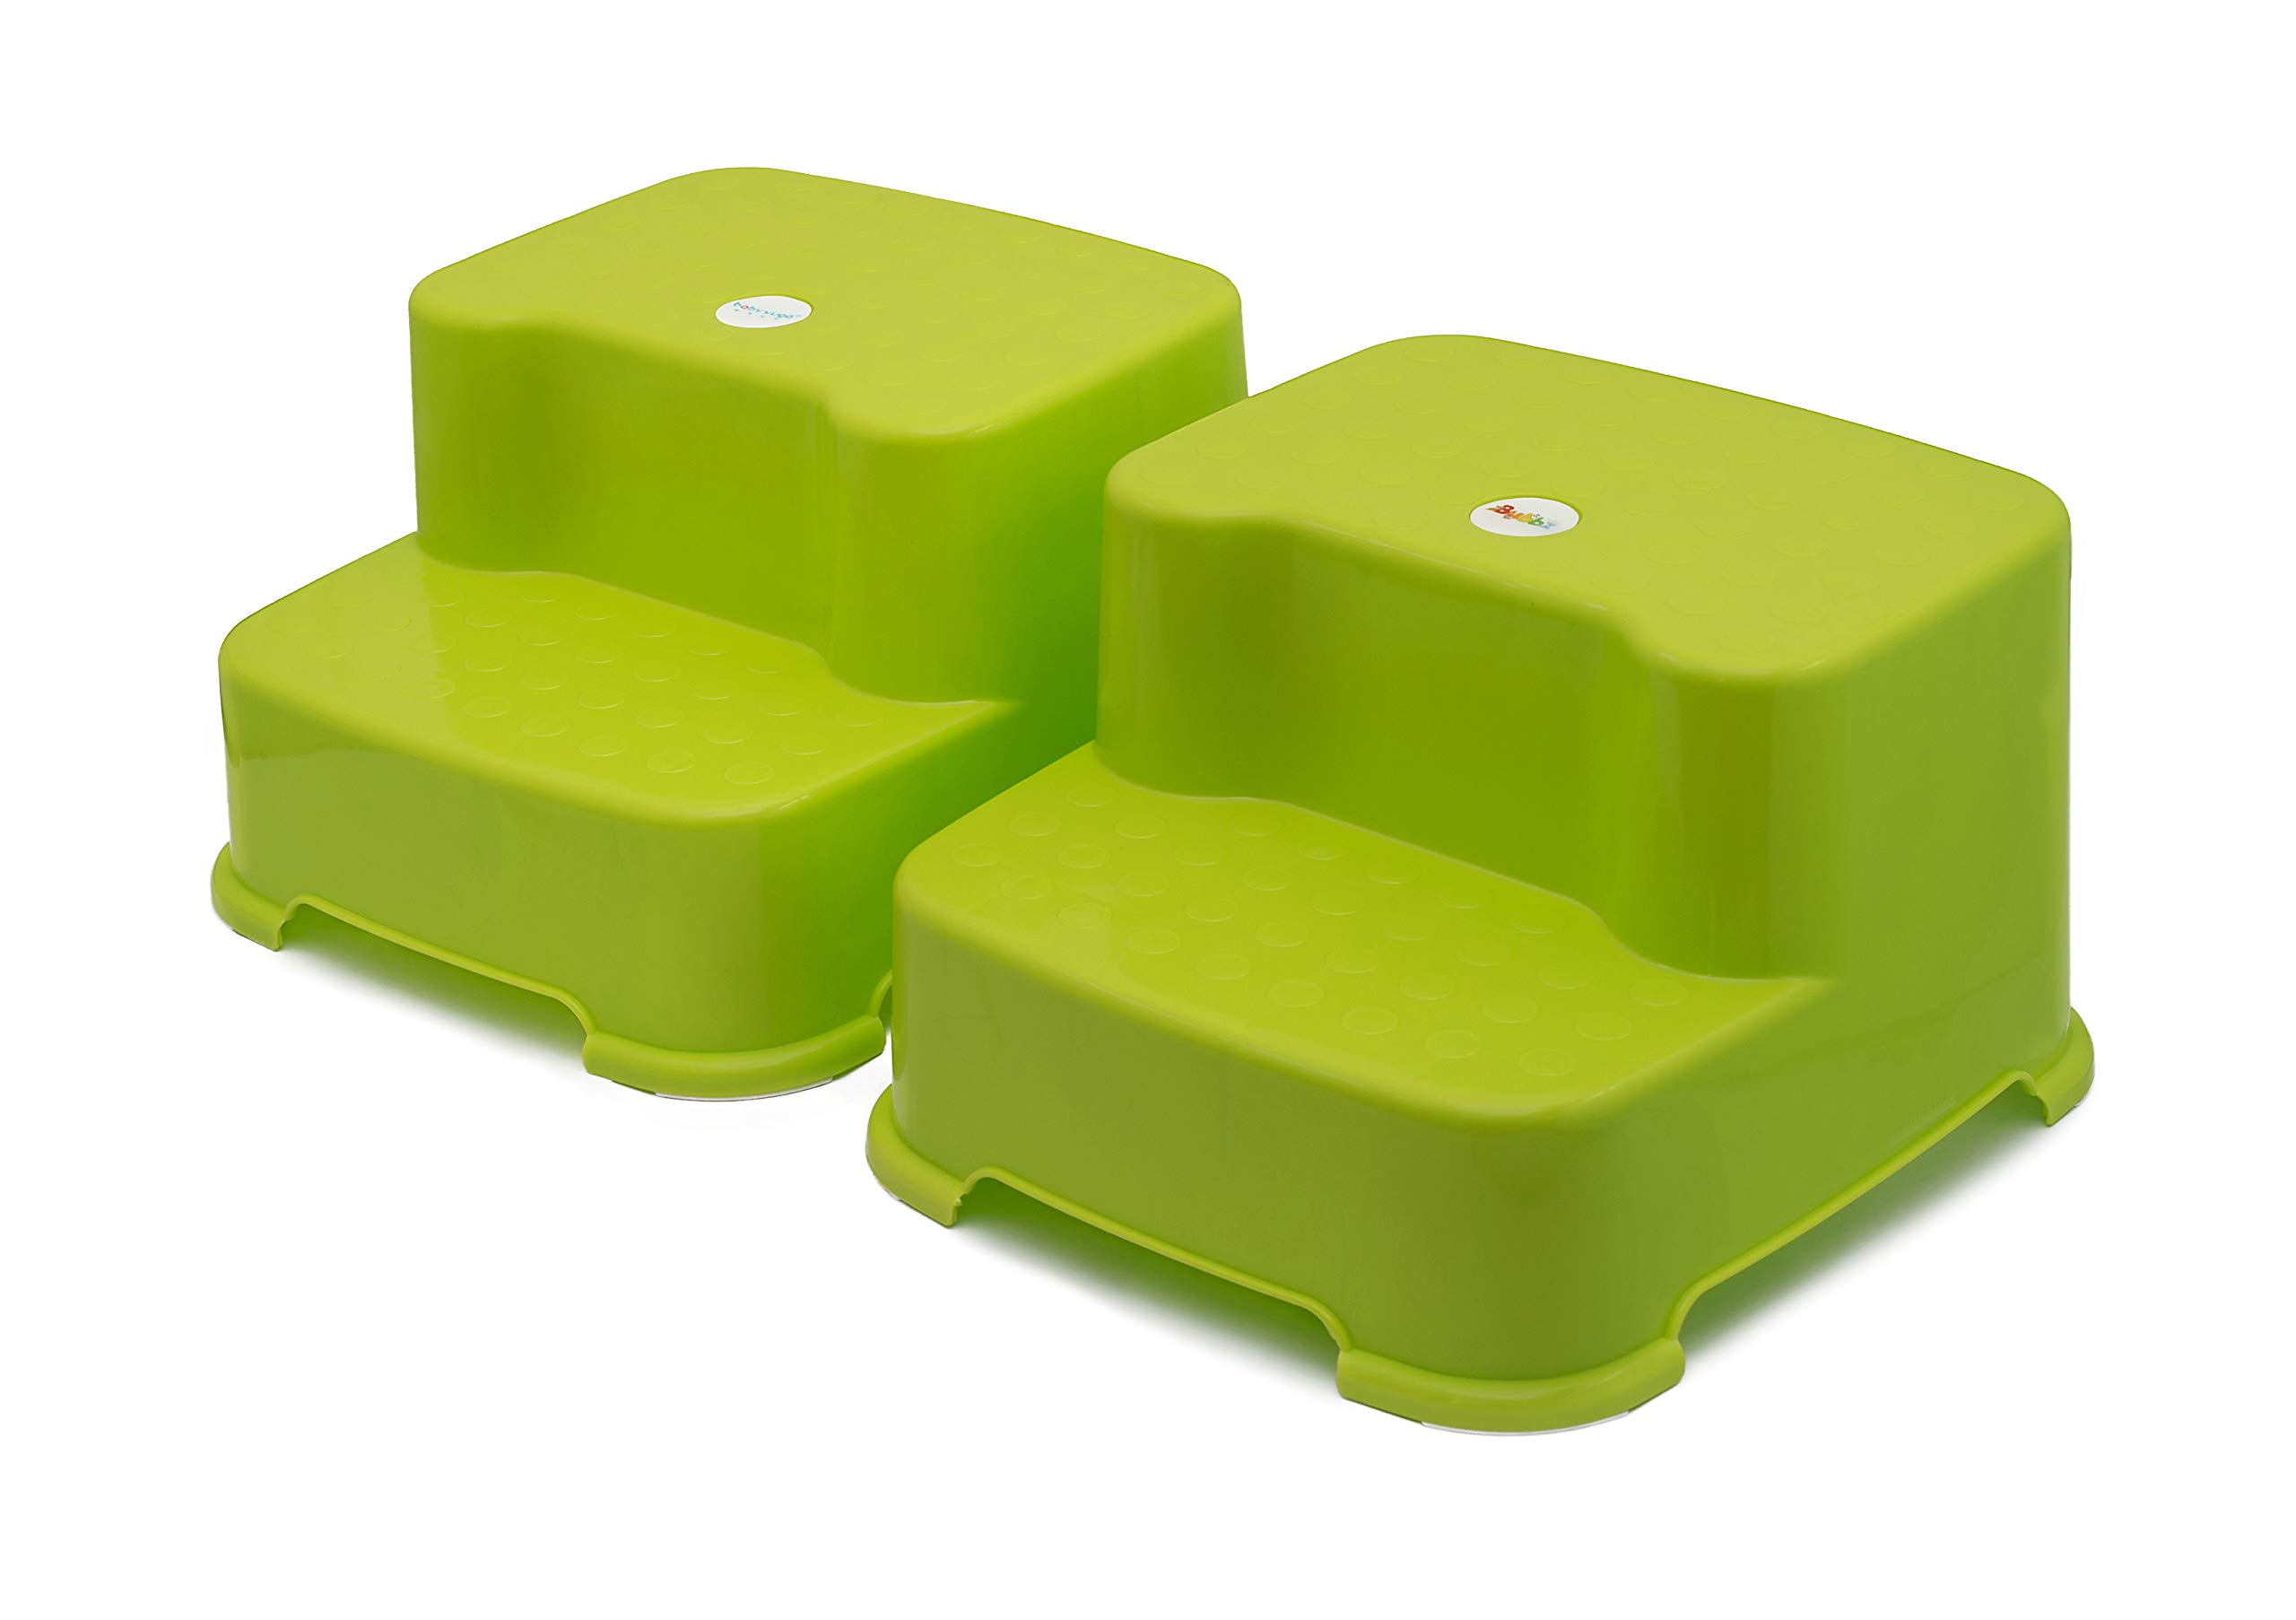 Bubbz Two Step Stool. Twin Green Pack. Bathroom and Kitchen Dual Height Stepping Stool for Toddlers and Children. Toilet Potty Training for Kids. Portable, Double Step, Slip Resistant. by Bubbz